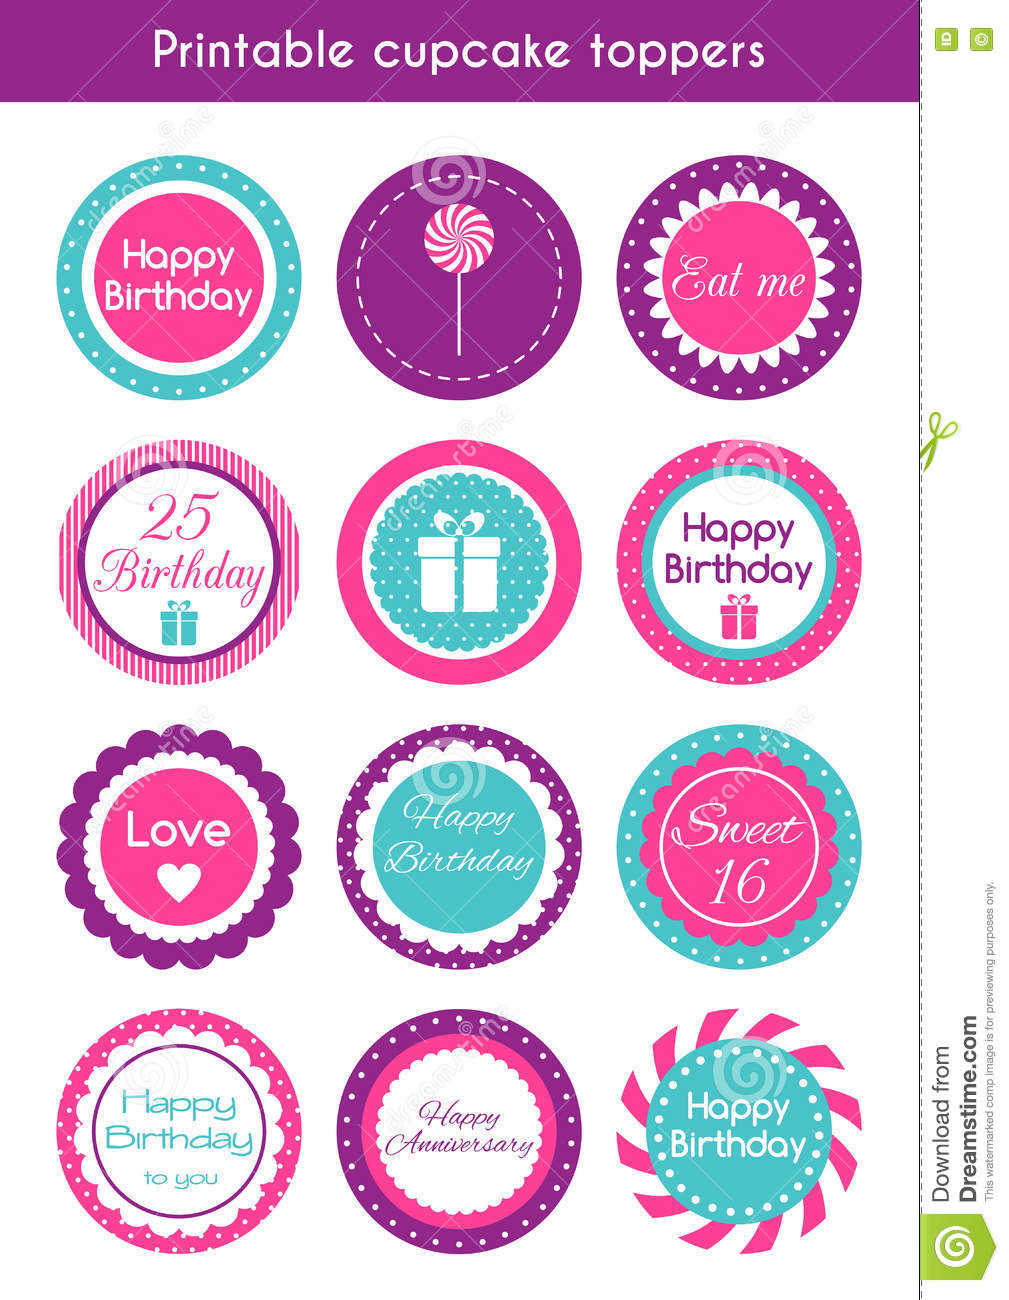 Cupcake Toppers Stock Illustrations 465 Cupcake Toppers Stock Illustrations Vectors Clipart Dreamstime